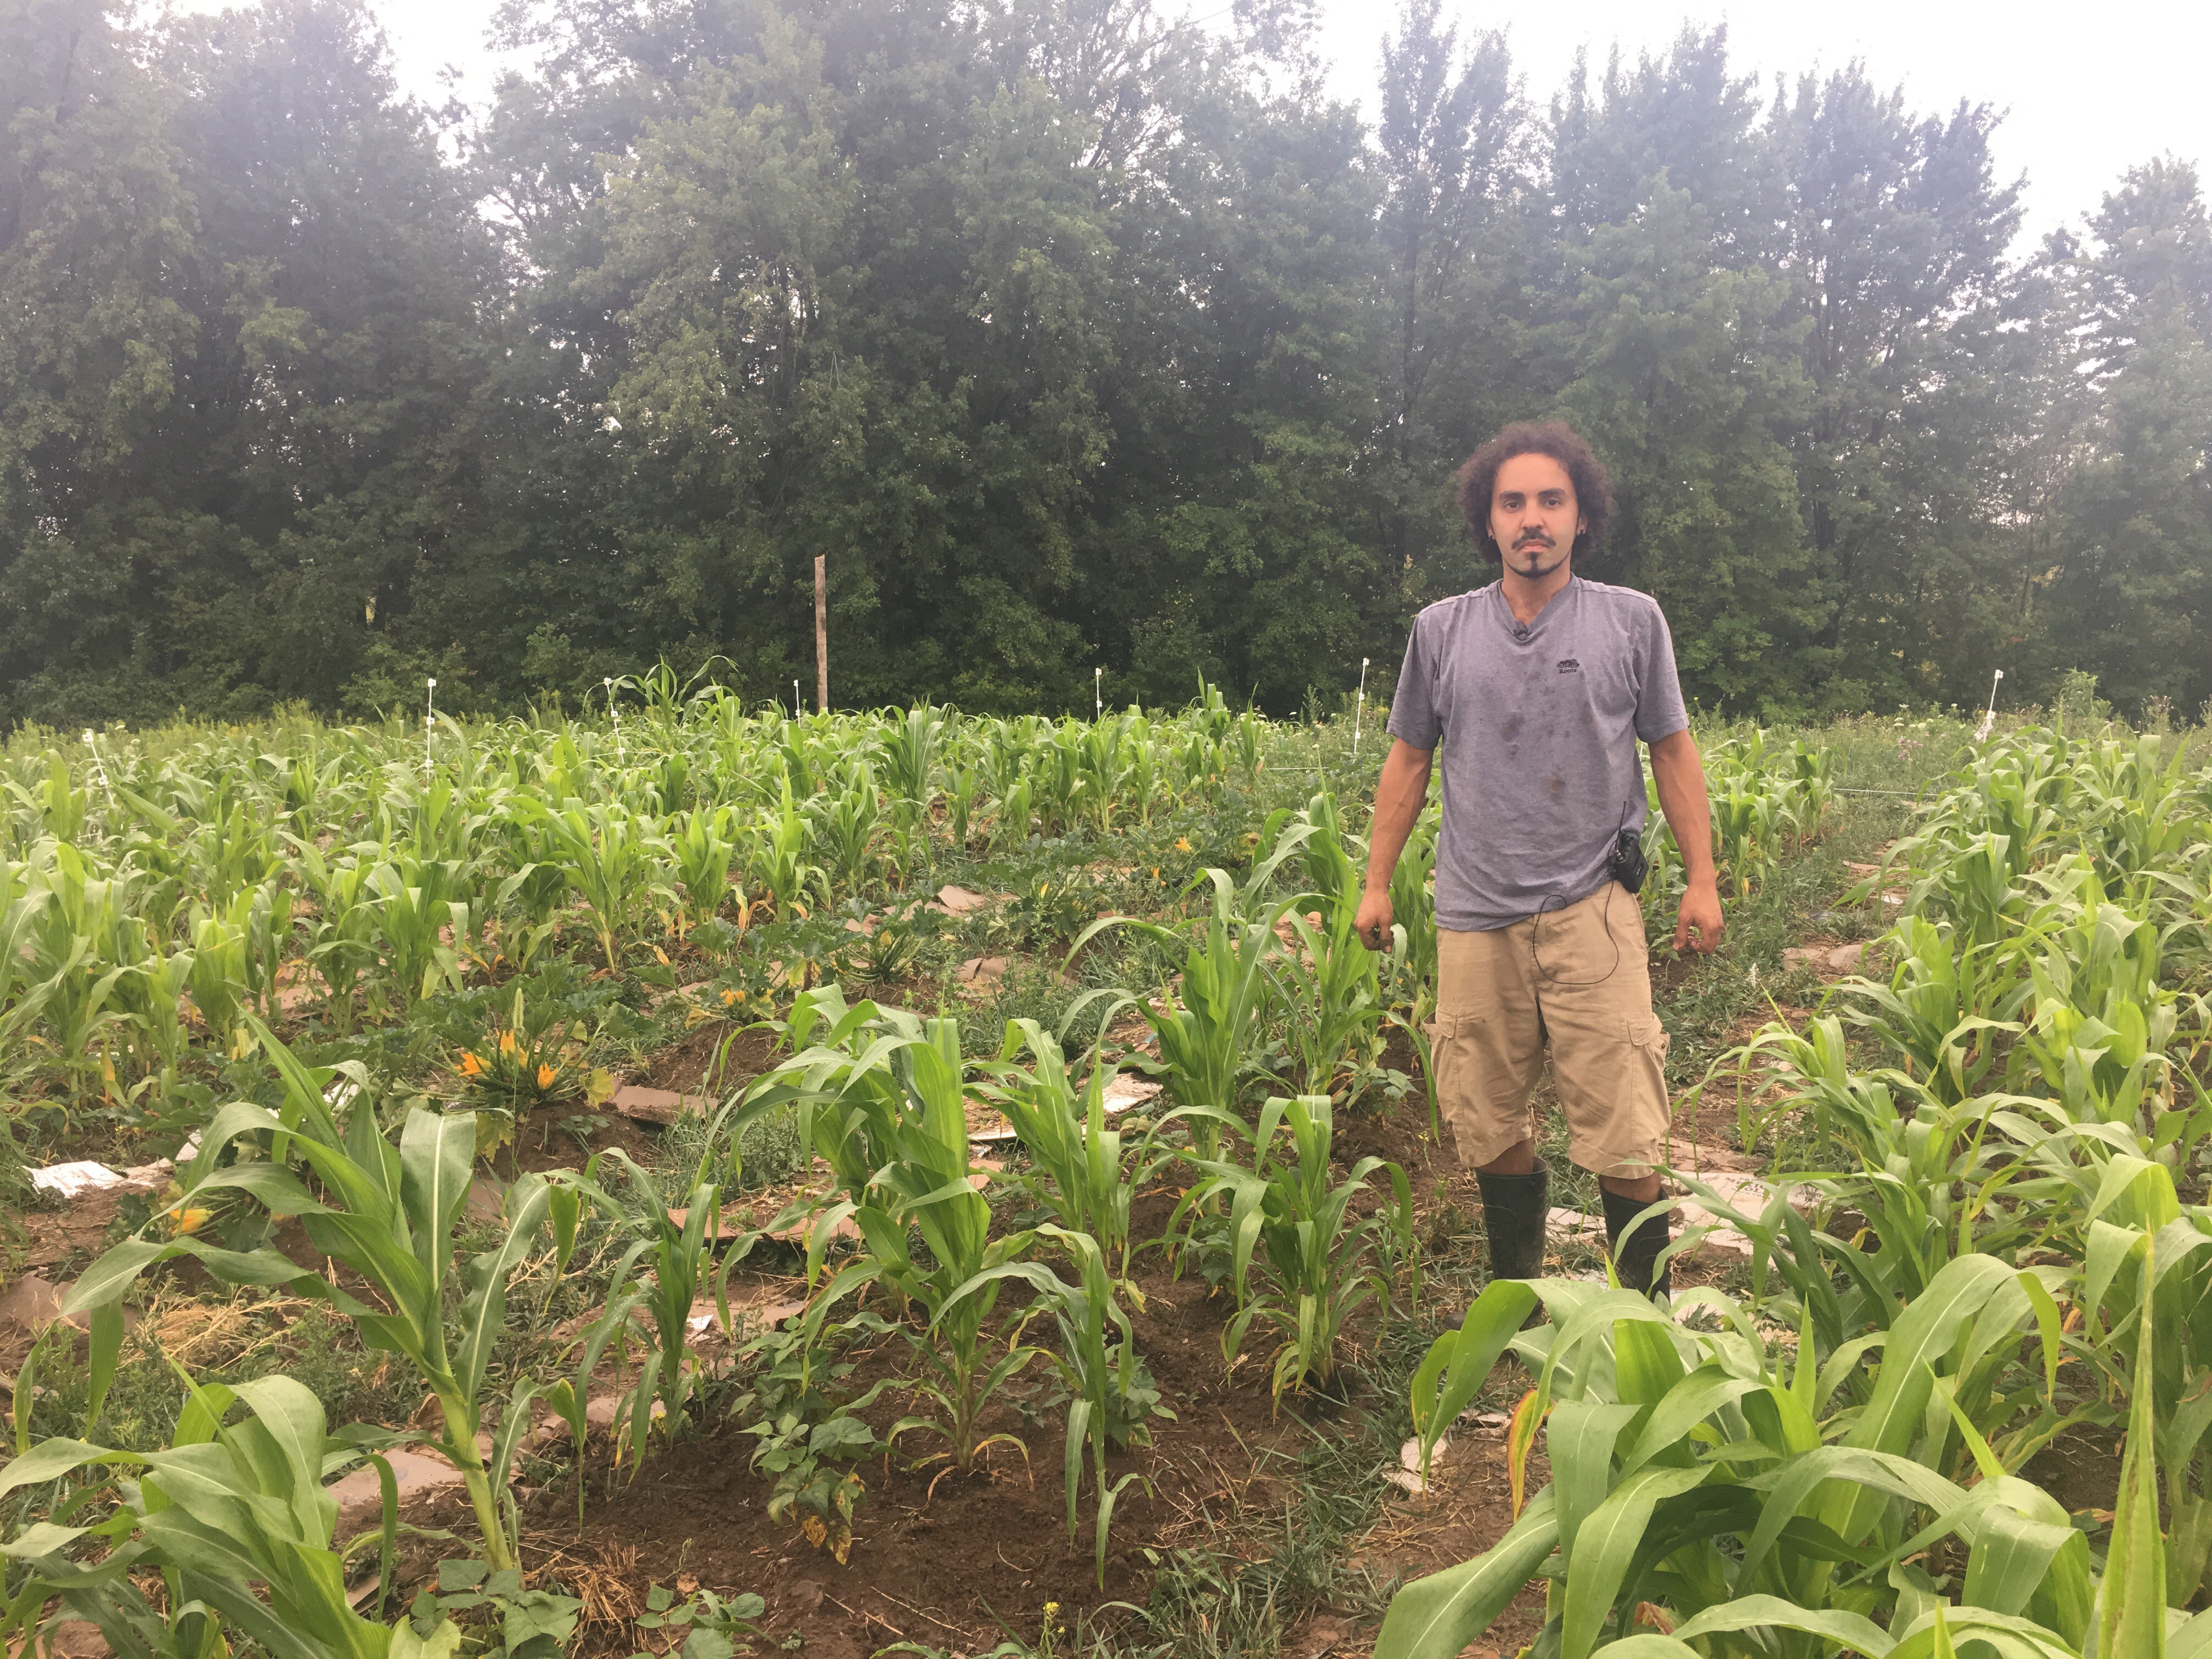 From farm labor to farm owner